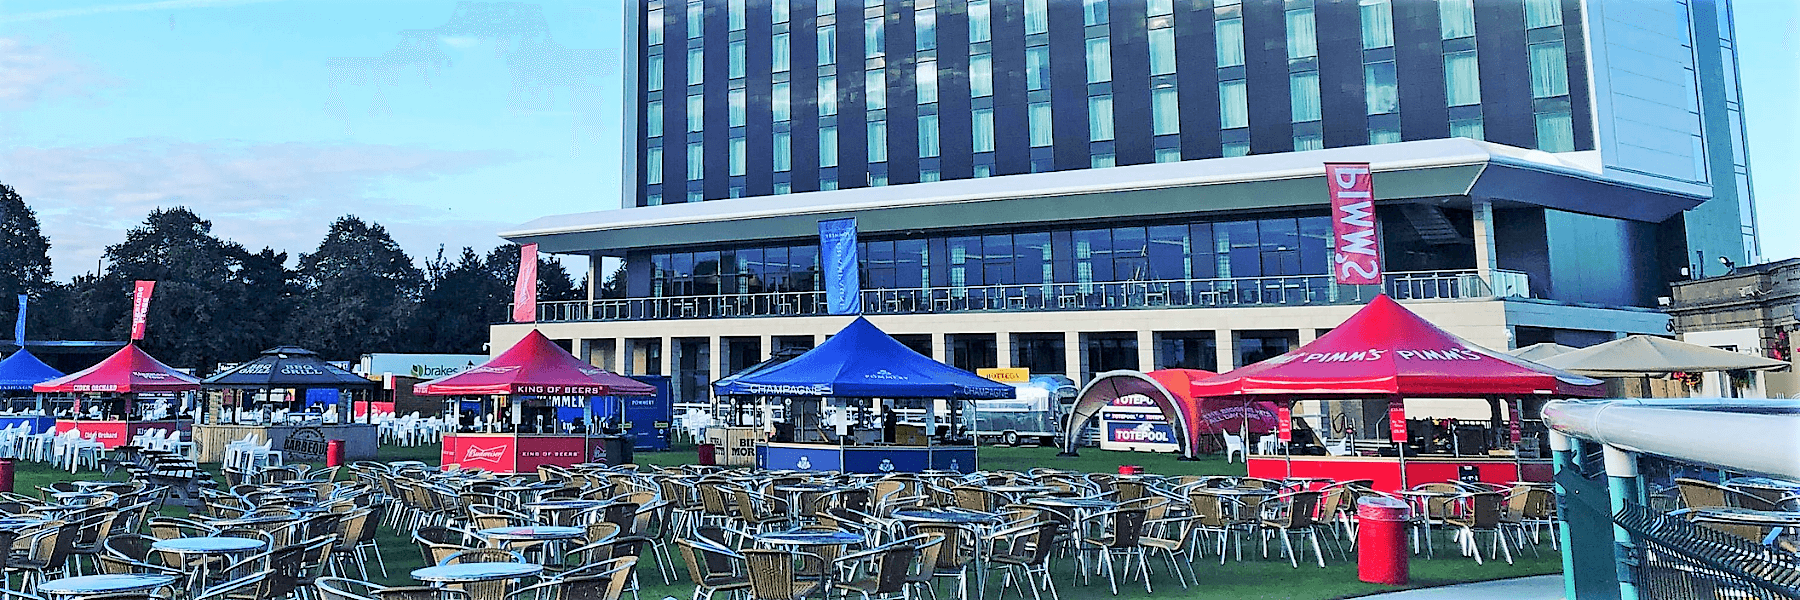 <p>Event, Mobile &amp; Stadia Bars &#8211; Tents &amp; Marquees &#8211; Pavilion Bars &#8211; Octagonal &#8211; Various Drinks Brands</p> <p>&nbsp;</p> <p>Outdoor Event Bars at Doncaster Racecourse</p> <p>&nbsp;</p> <p>Octagonal Pavilions branded for different drinks brands &#8211; including Roof Flags</p>